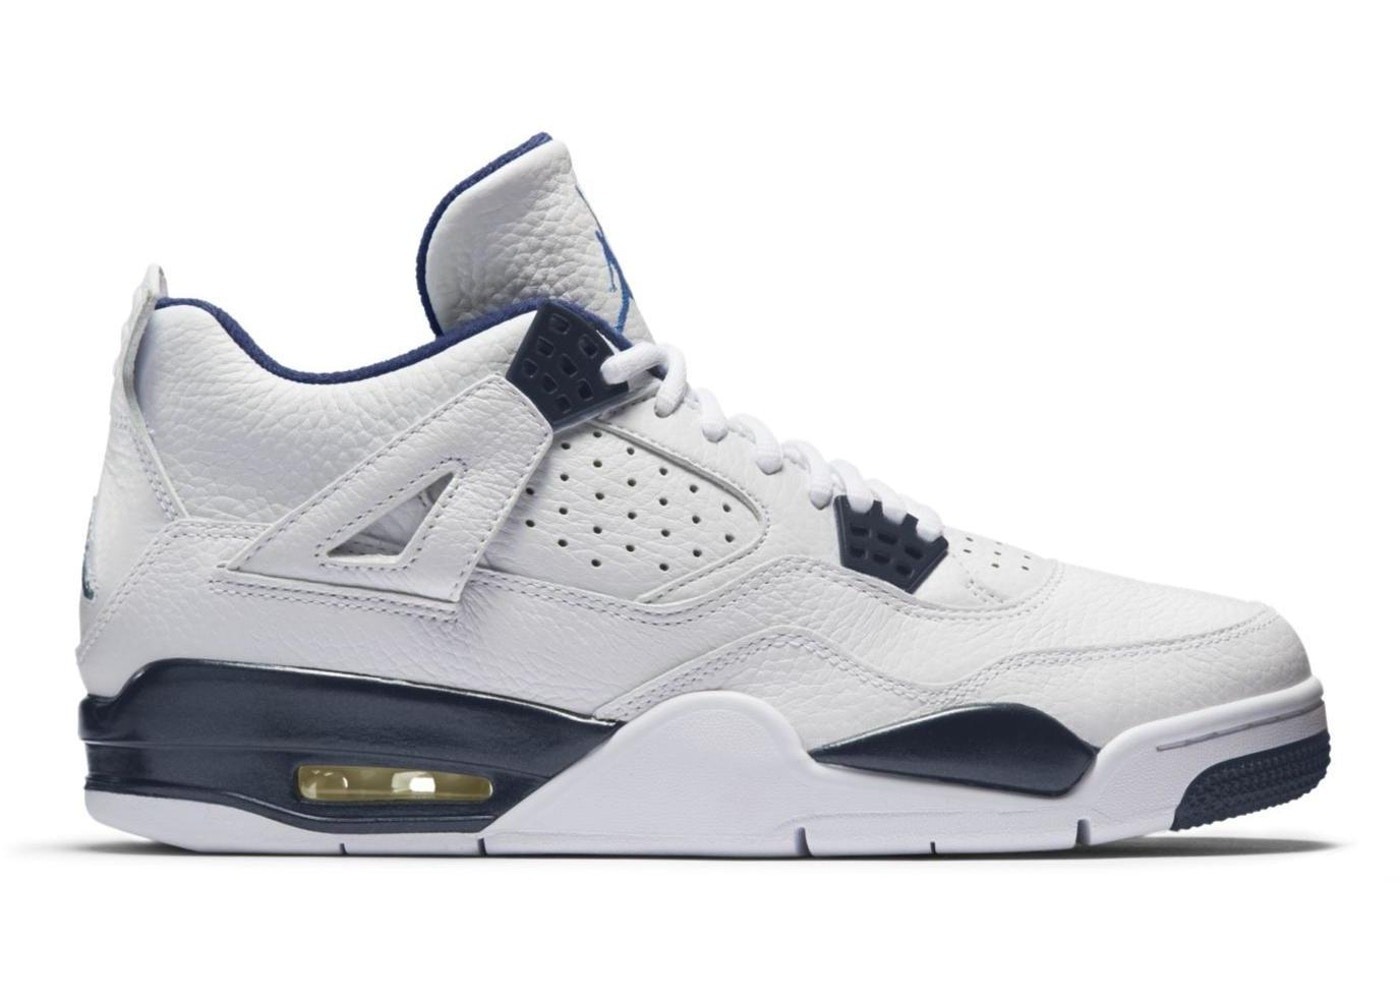 f643b9bce4575a Sell. or Ask. Size 9. View All Bids. Jordan 4 Retro Columbia ...